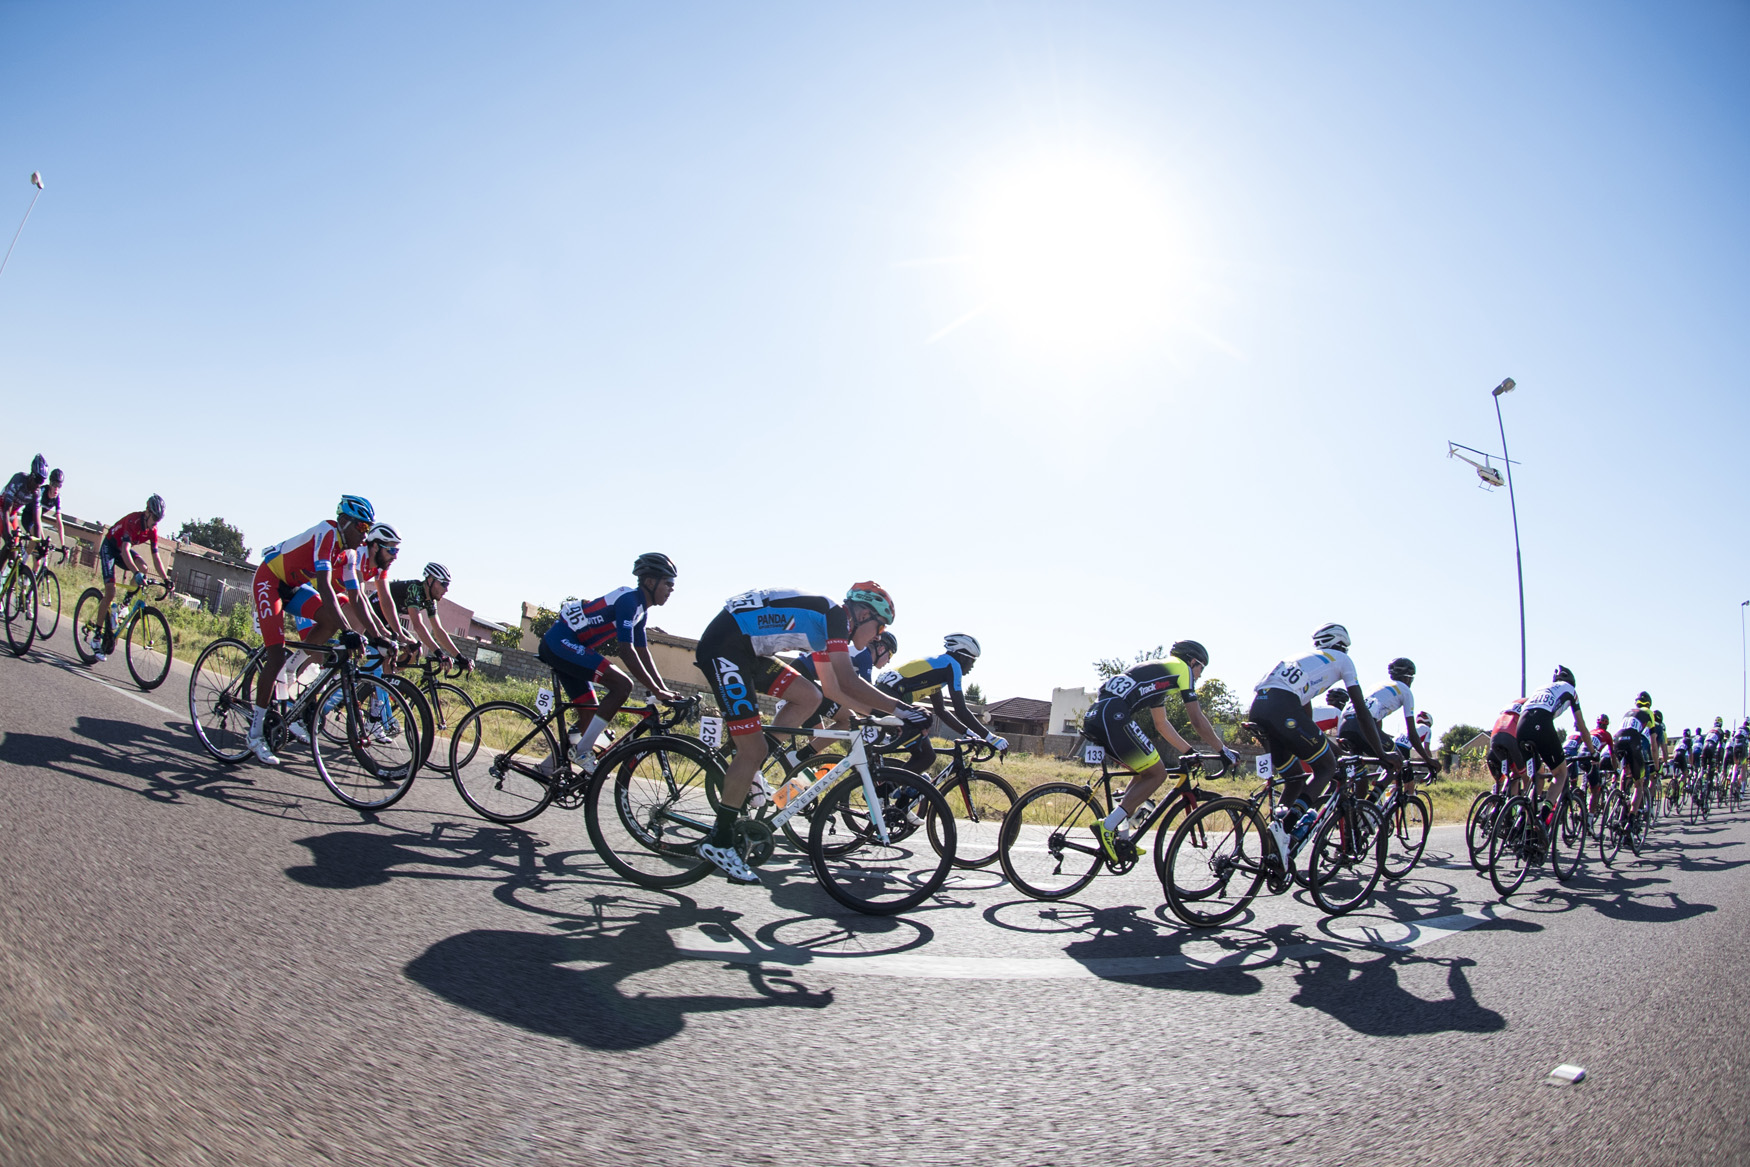 Nelson Mandela Bay Municipality [NMBM] and Cycling South Africa [Cycling SA] are pleased to announce the Africa Cup cycling event, which will see 20 African nations competing over four days, taking place in Port Elizabeth from 10 to 13 October 2019. Photo credit: Tour de Limpopo/Andrew McFadden